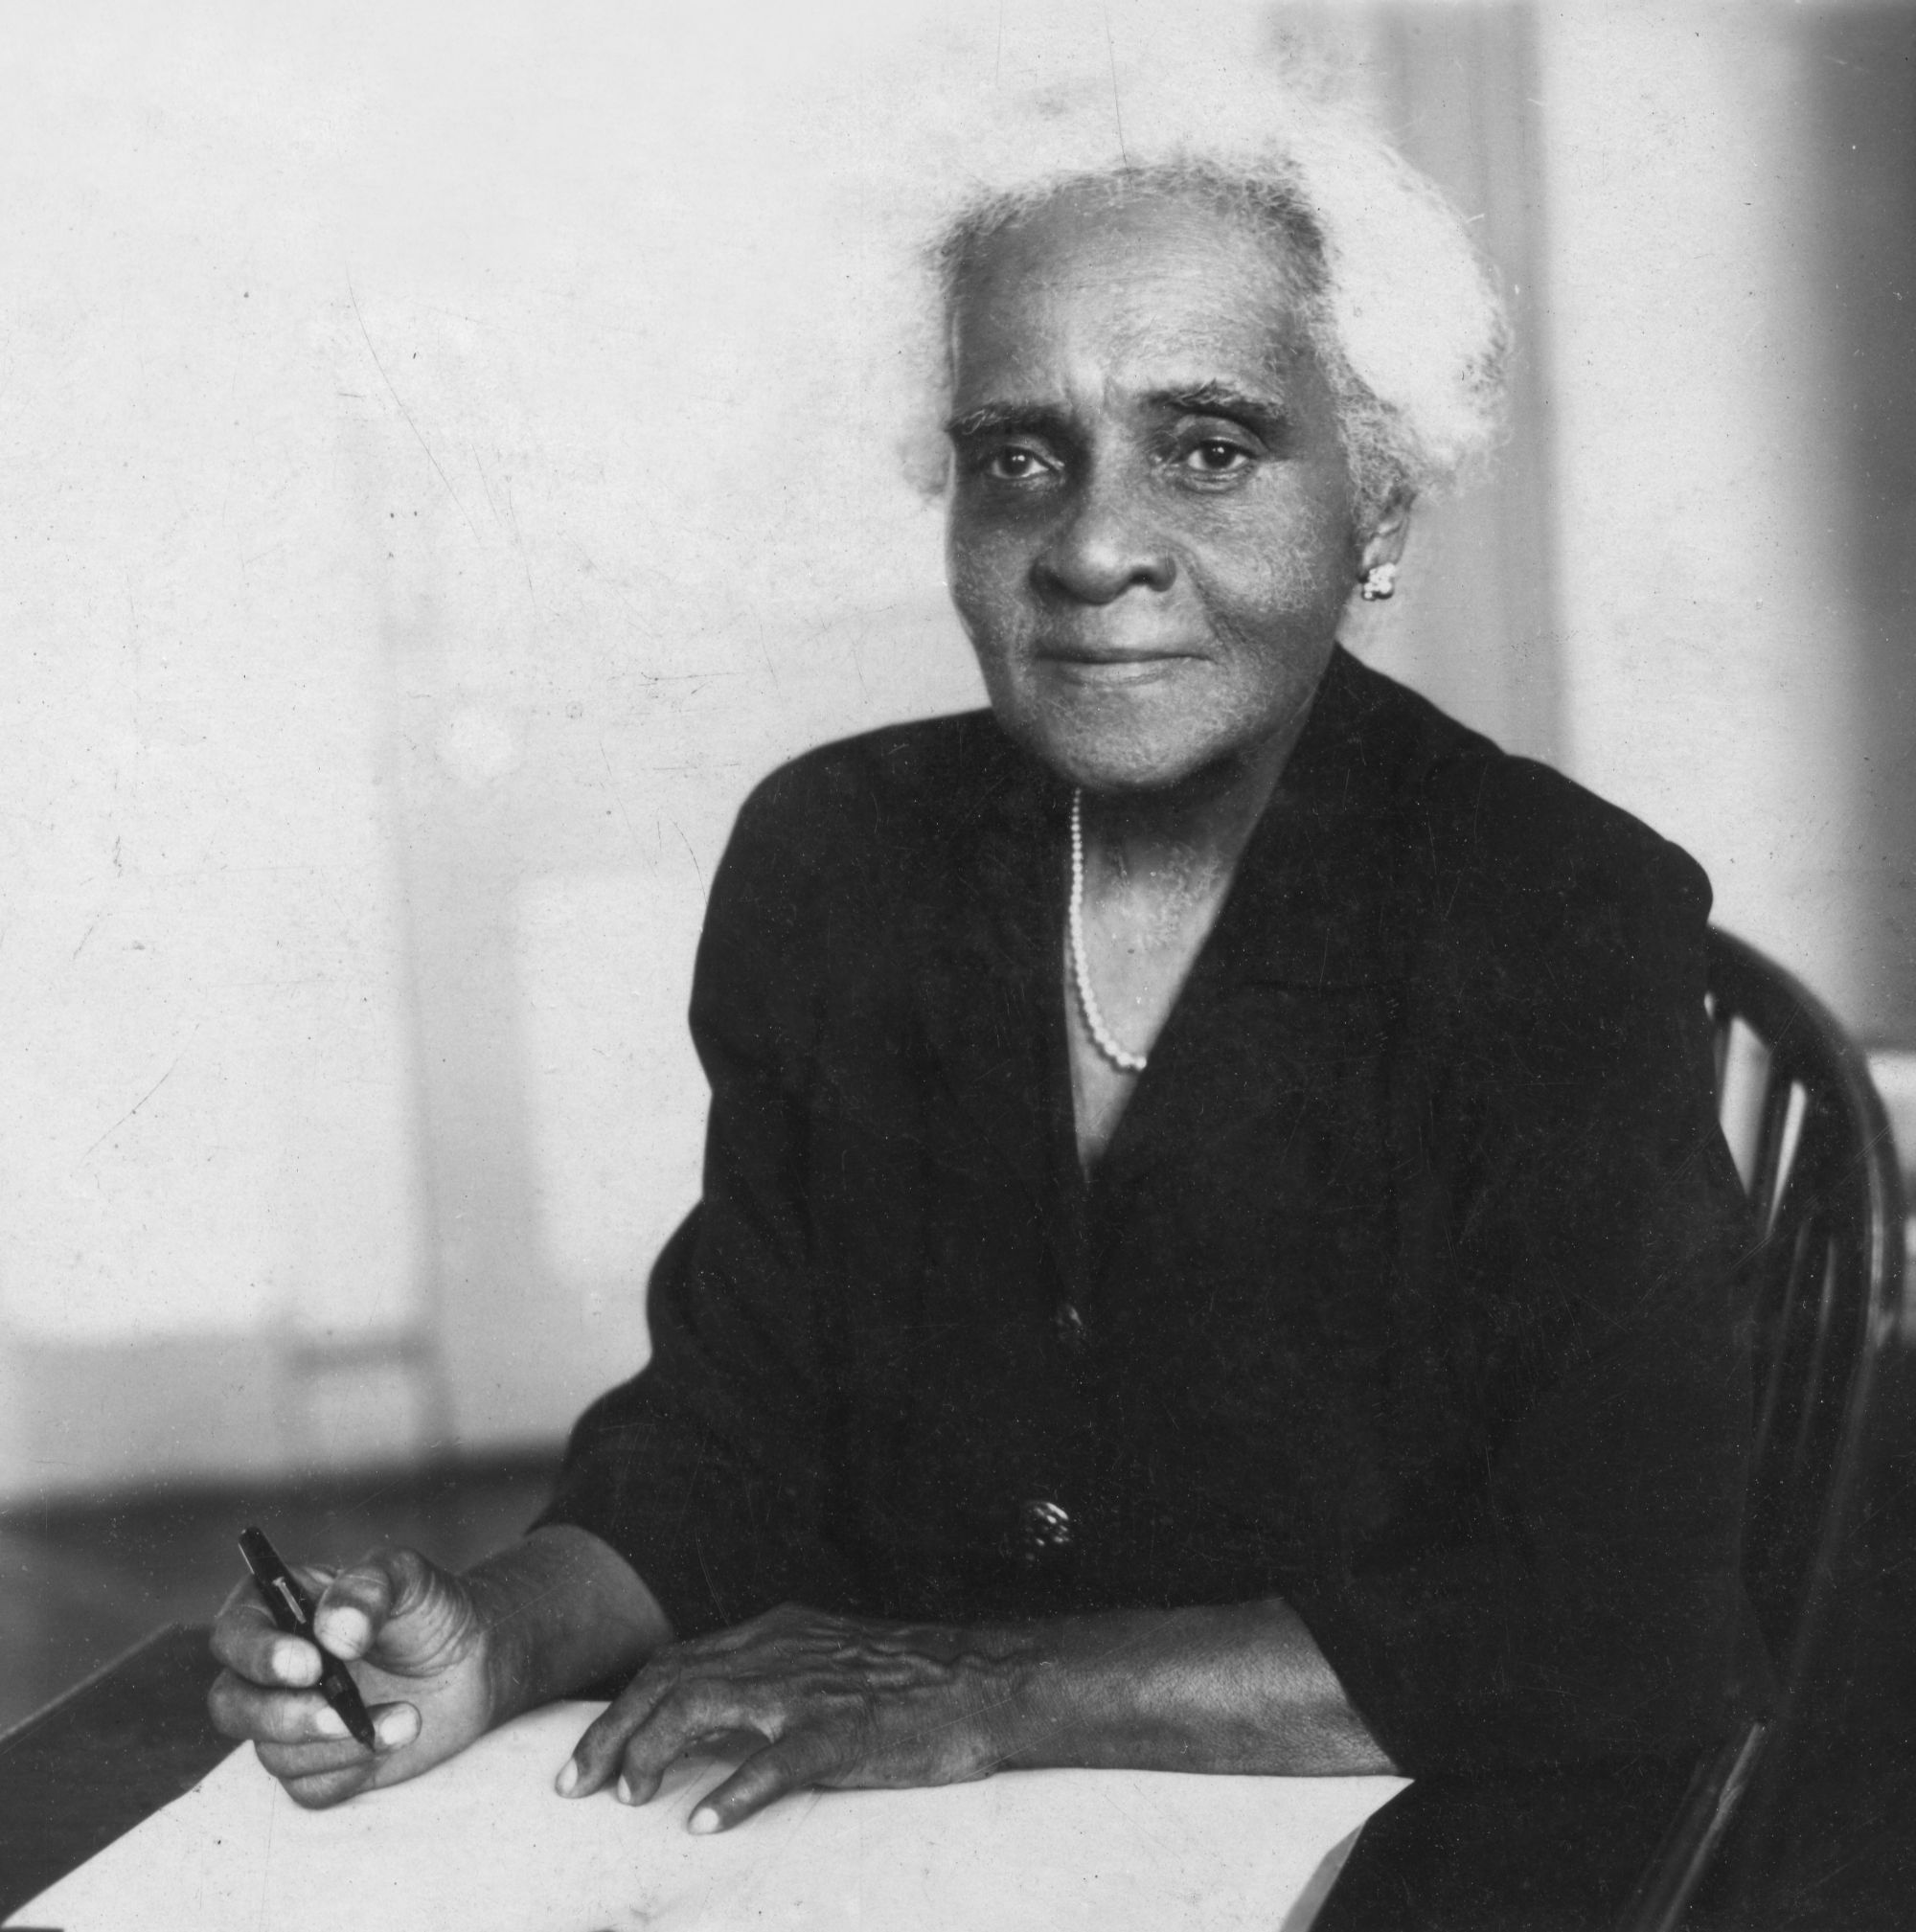 Photograph of Adelaide Casely-Hayford (1868–1969), née Smith, educator, feminist, cultural nationalist and writer from Sierra Leone.